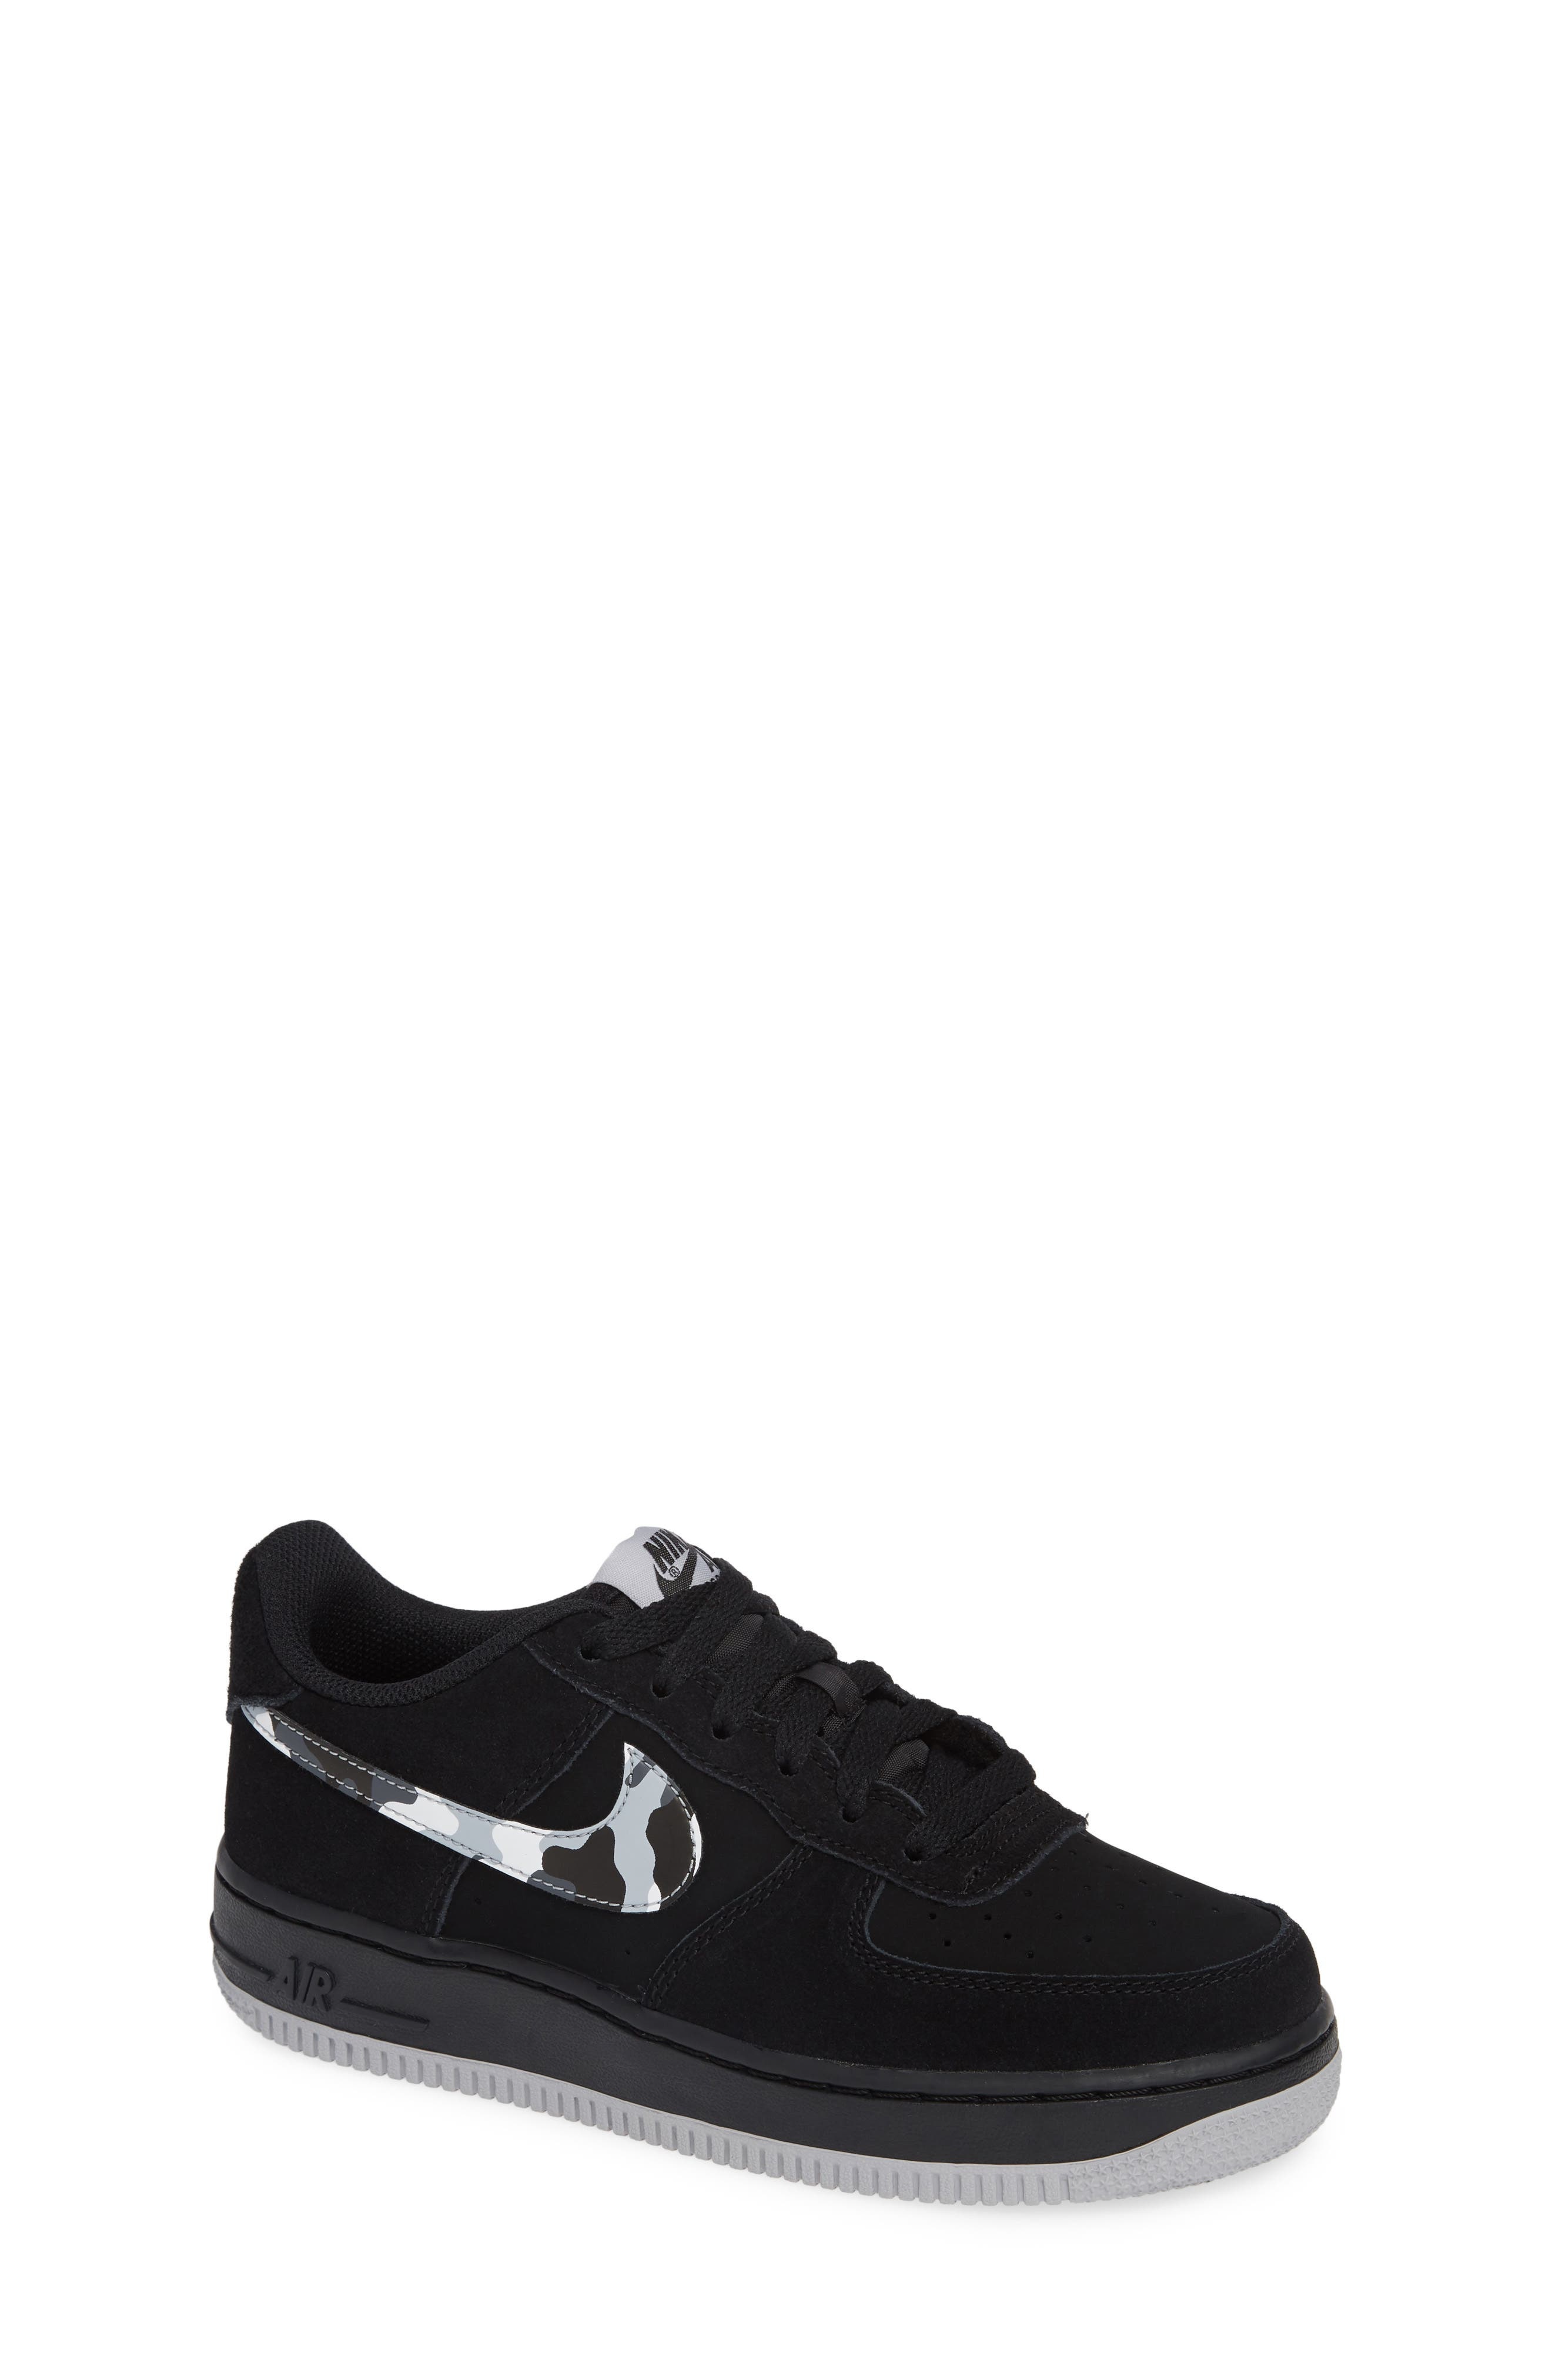 Air Force 1 Sneaker,                             Main thumbnail 1, color,                             BLACK/ GREY/ WHITE